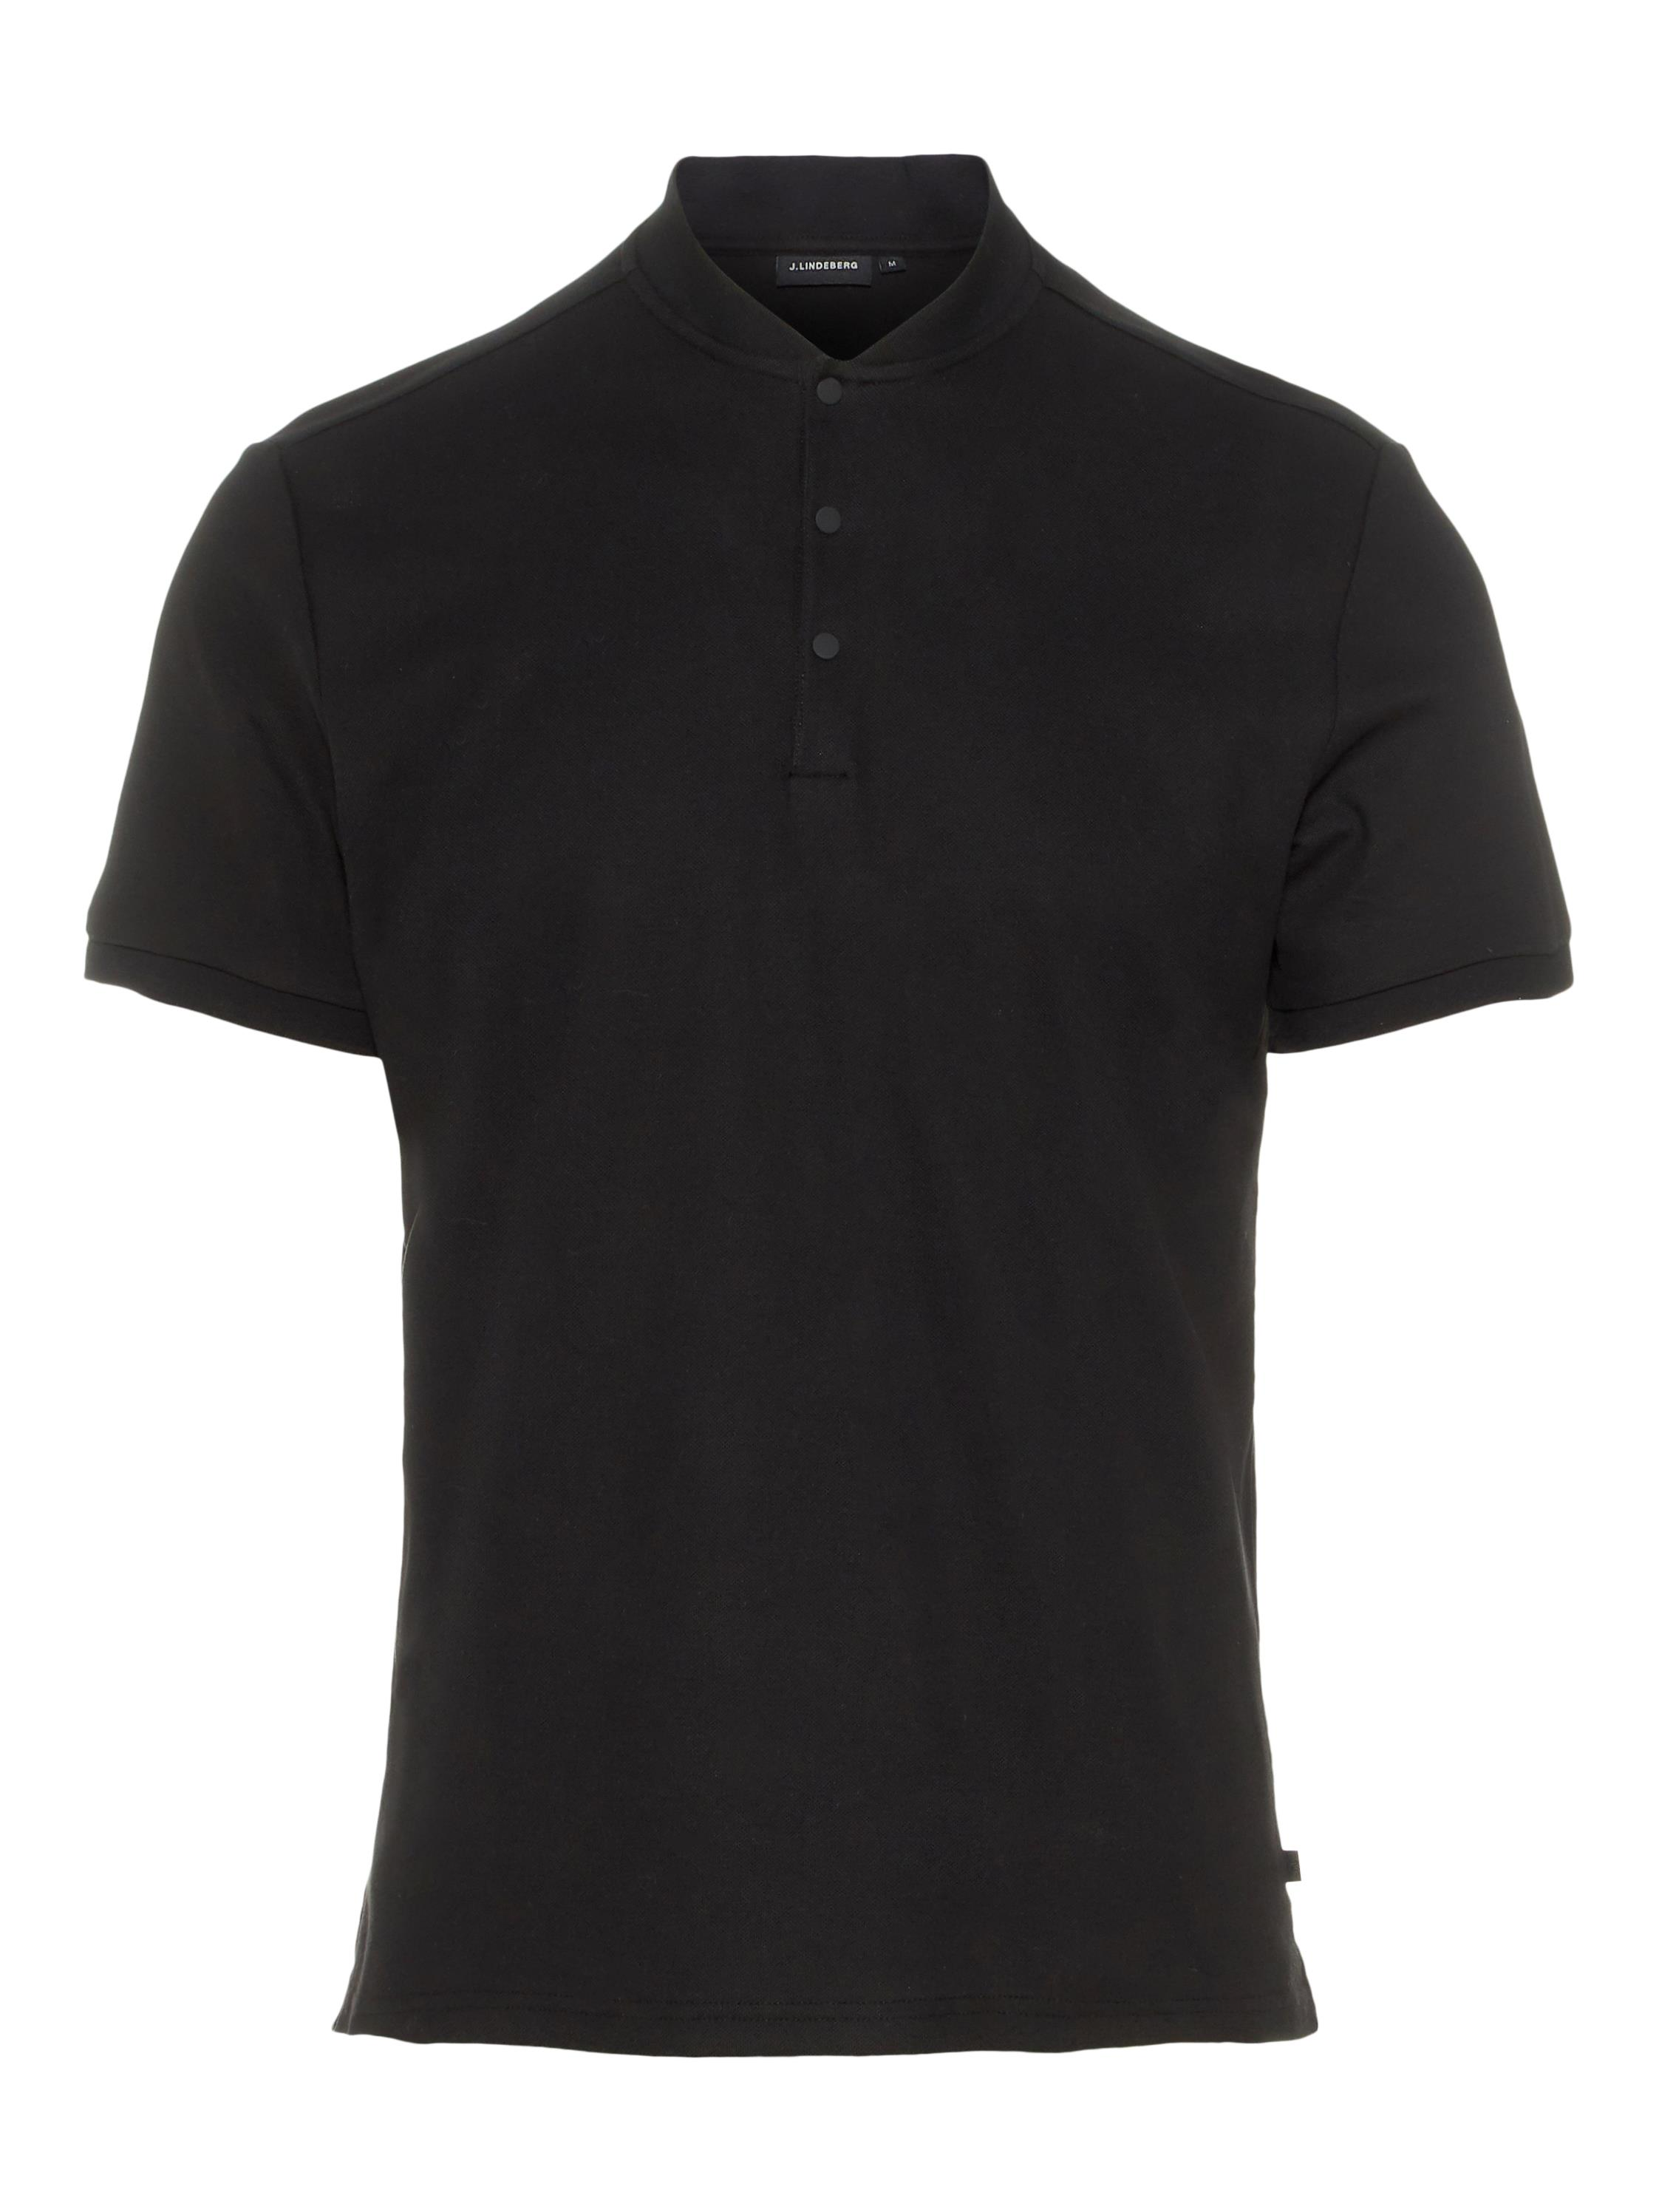 f65c66d84 J Lindeberg Leo Pique Polo Product image. Polo shirt with a straight fit